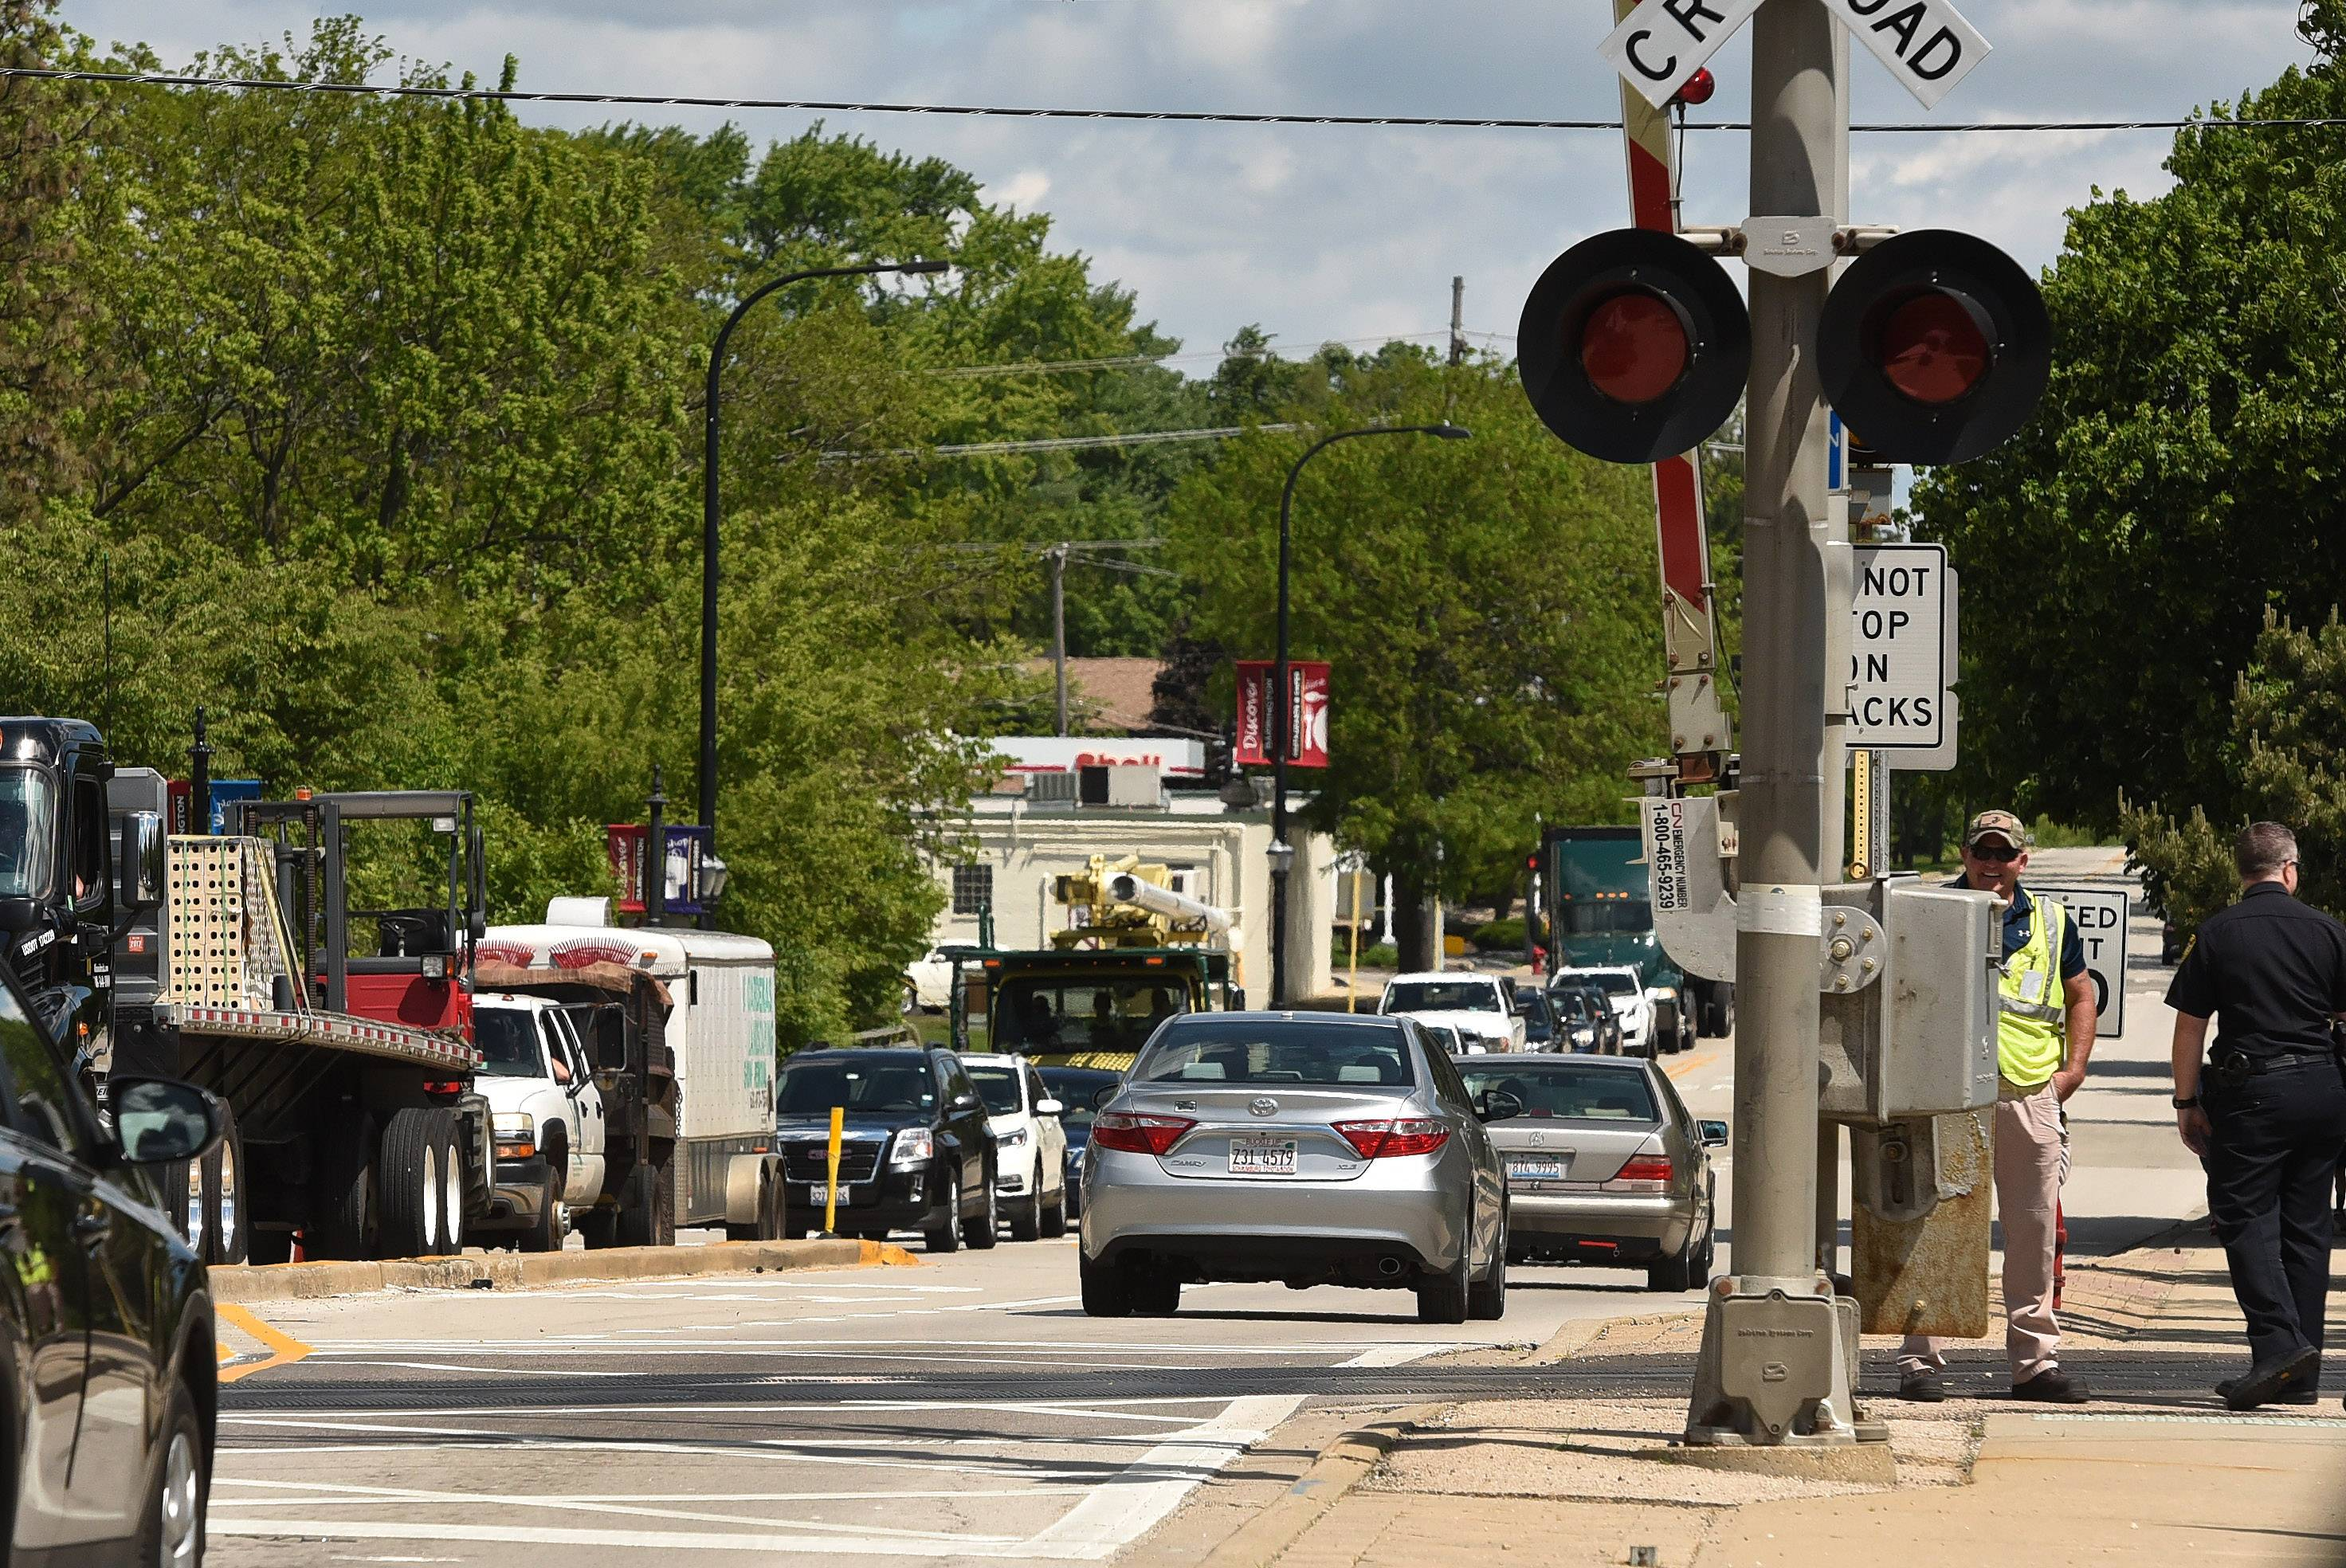 Traffic is rolling again through downtown Barrington after an earlier collision between a train and truck closed both routes 59 and 14 in the heart of the village for more than two hours.